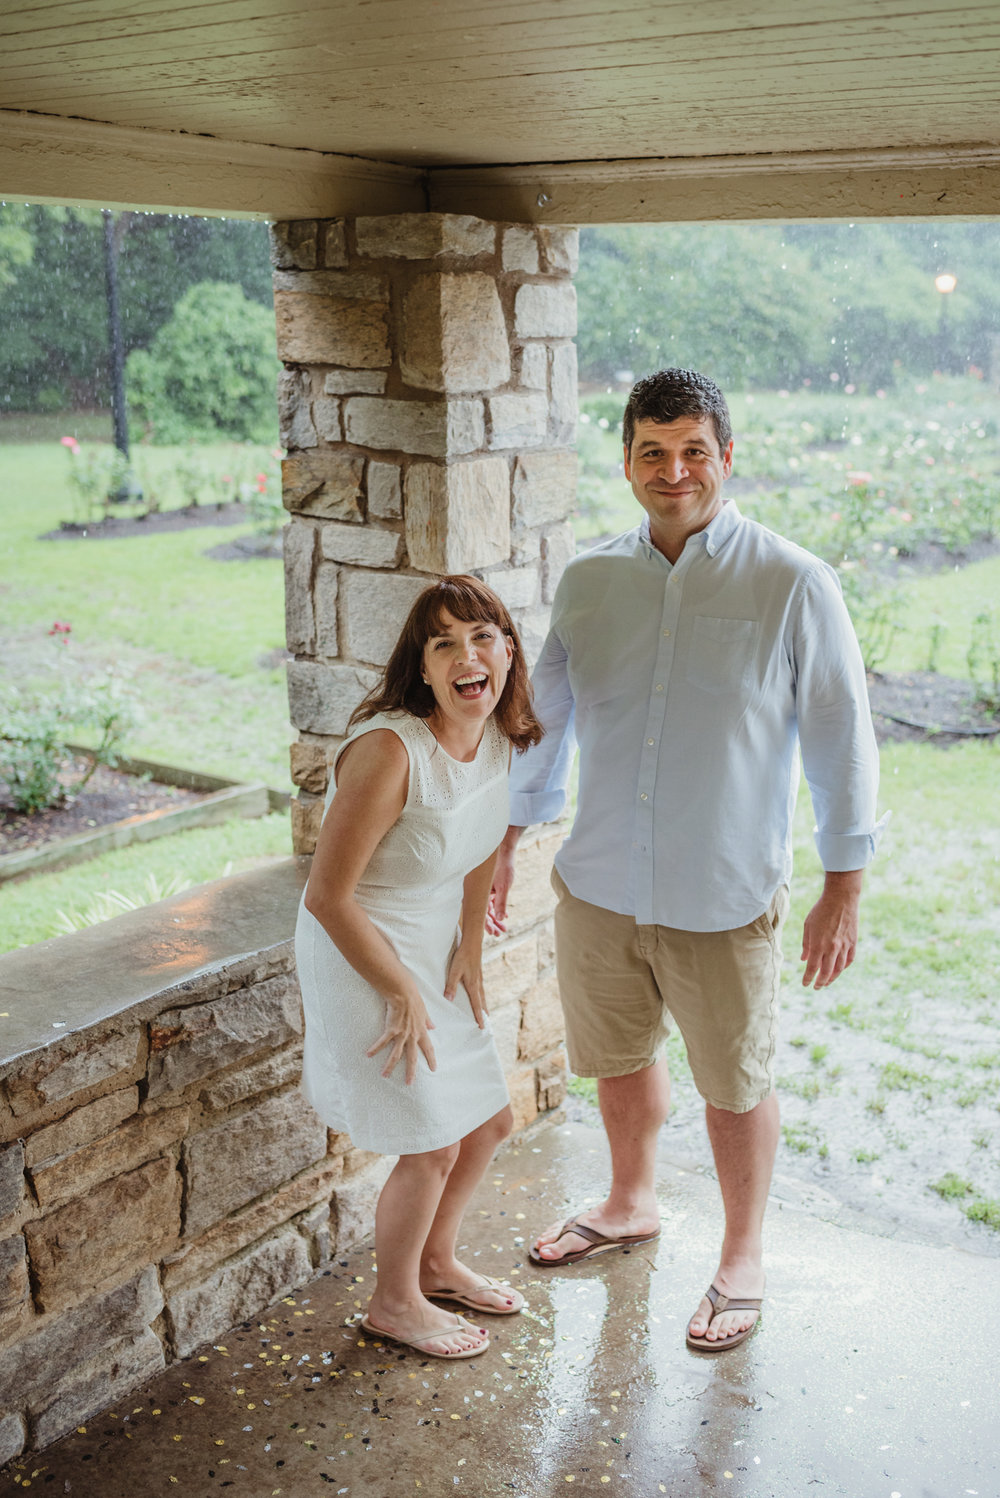 The bride and groom to be laugh at the camera during the rainstorm in Raleigh, during their engagement session with Rose Trail Images.